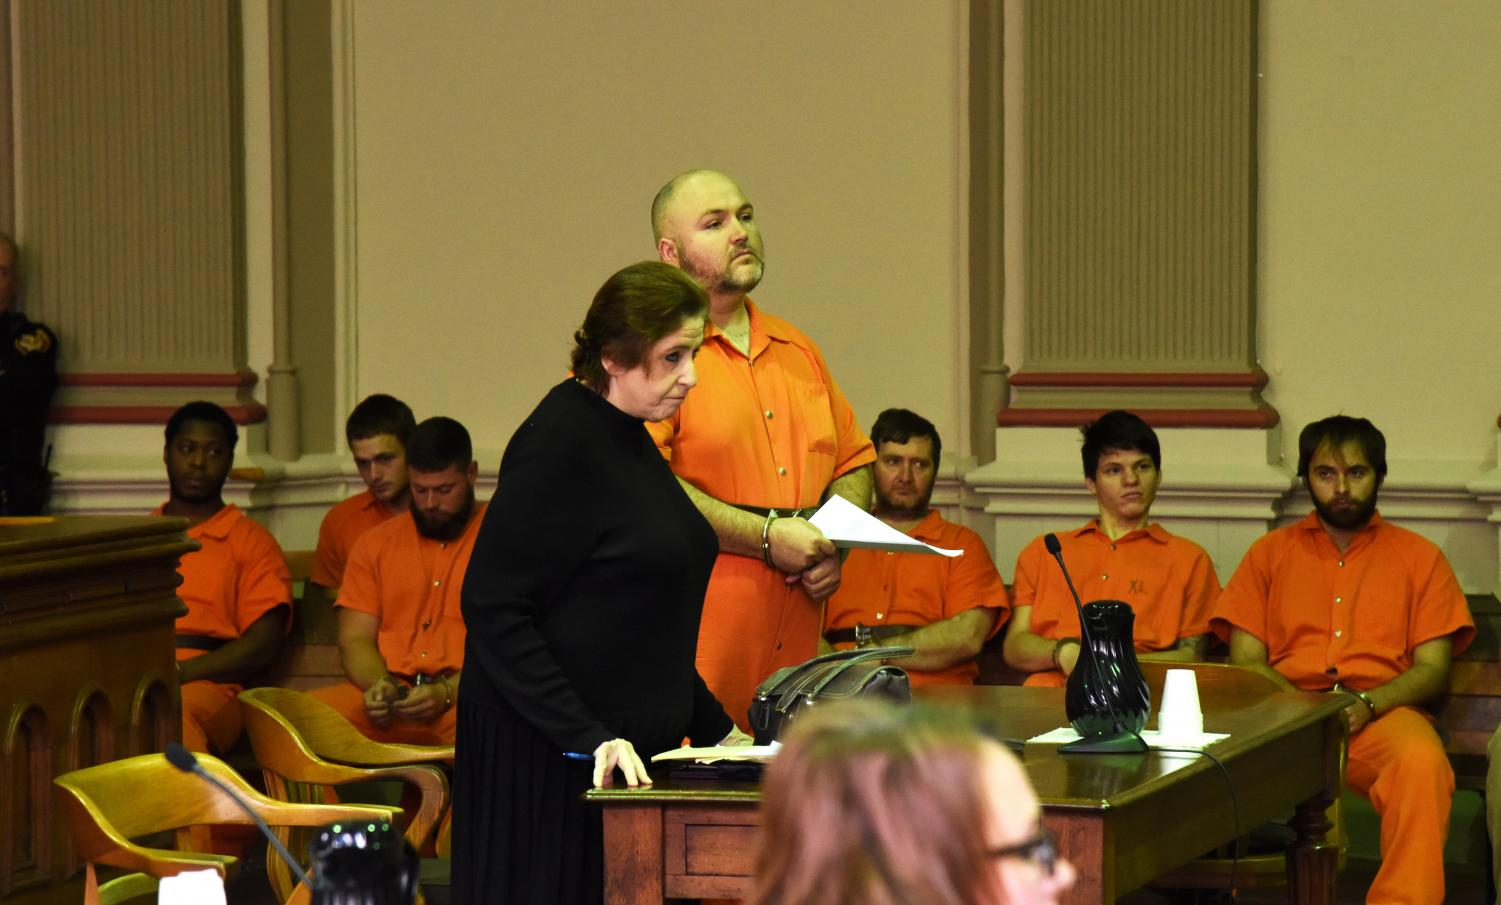 Terry Bocook appears in court before Judge Mark Fleegle with his attorney Elizabeth Gaba.